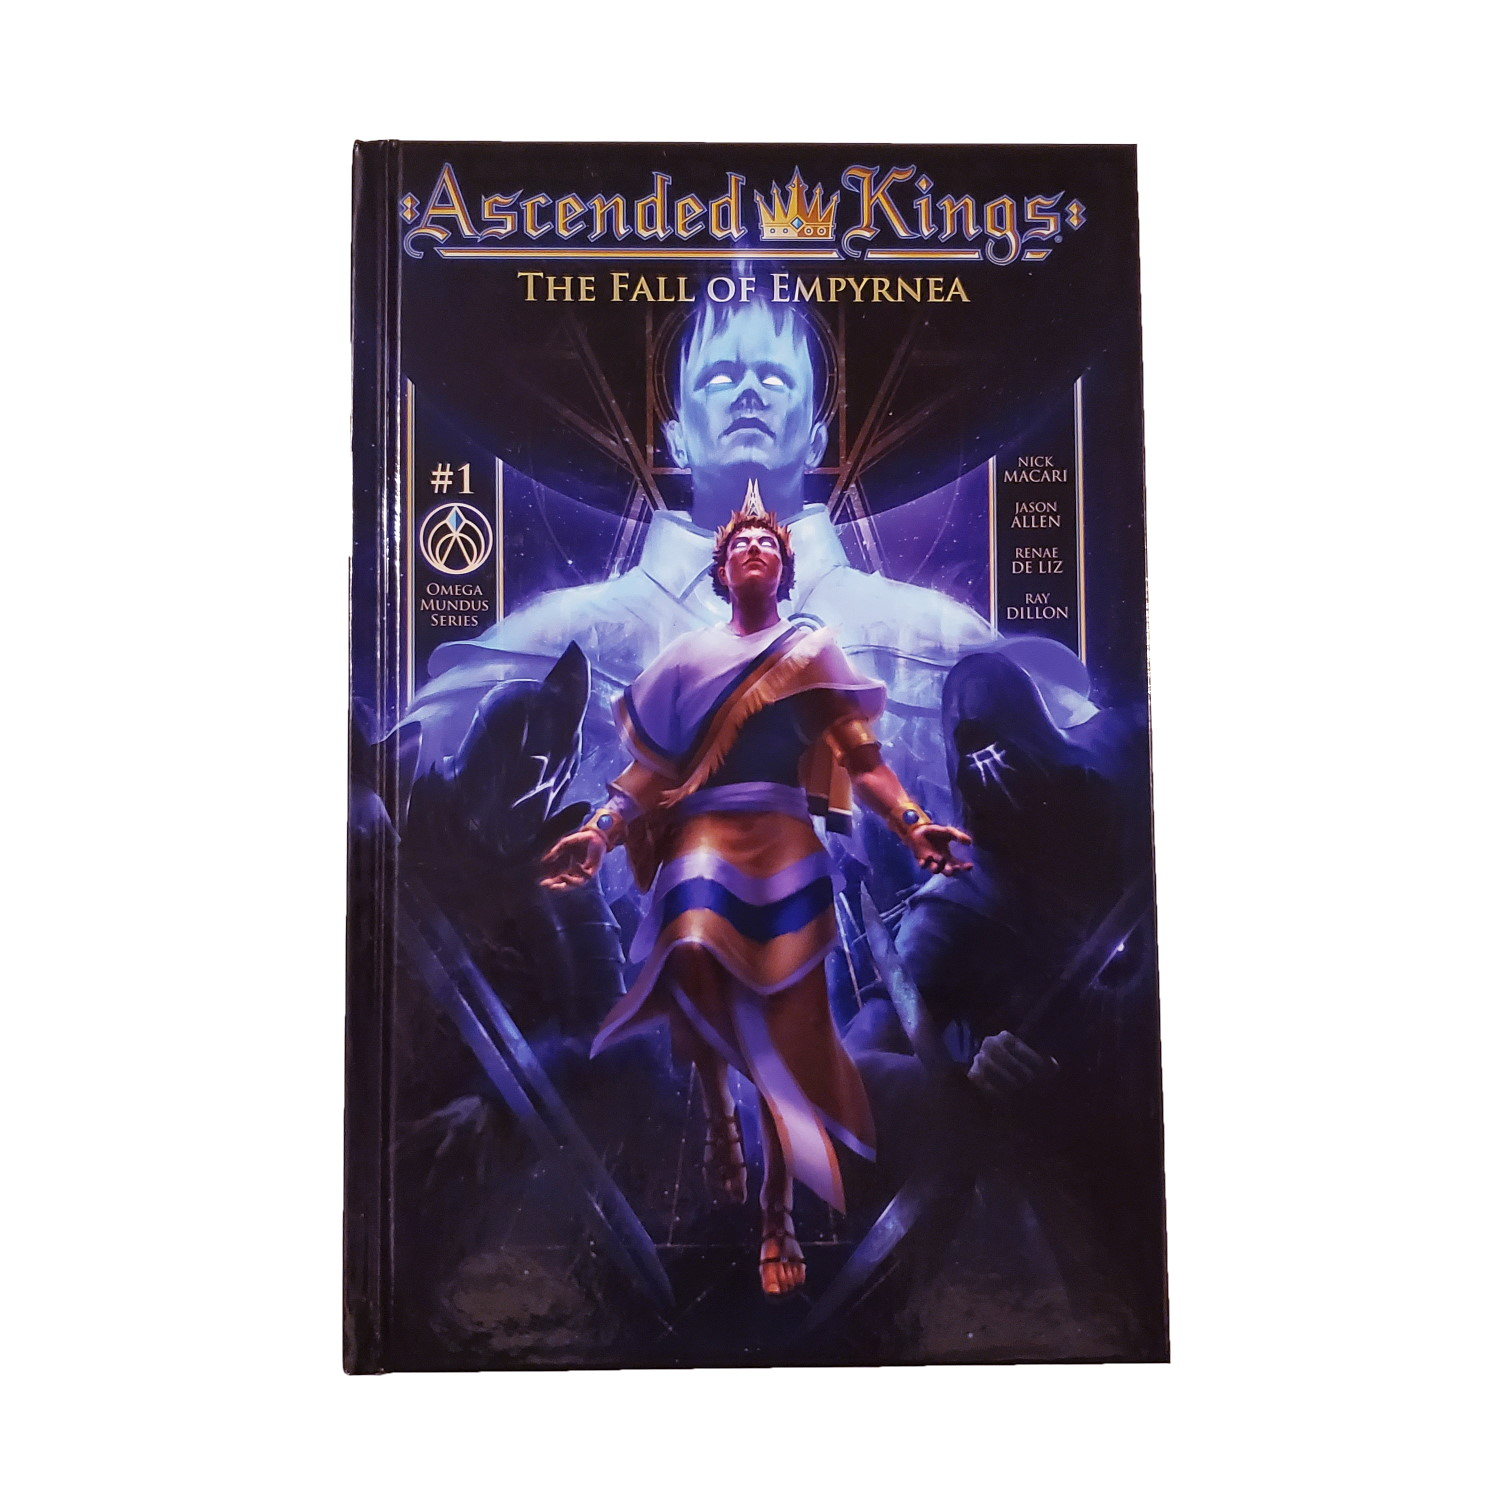 The cover art for Ascended Kings: The Fall of Empyrnea, featuring High King Apsu shadowed by his blue ethereal revenant.